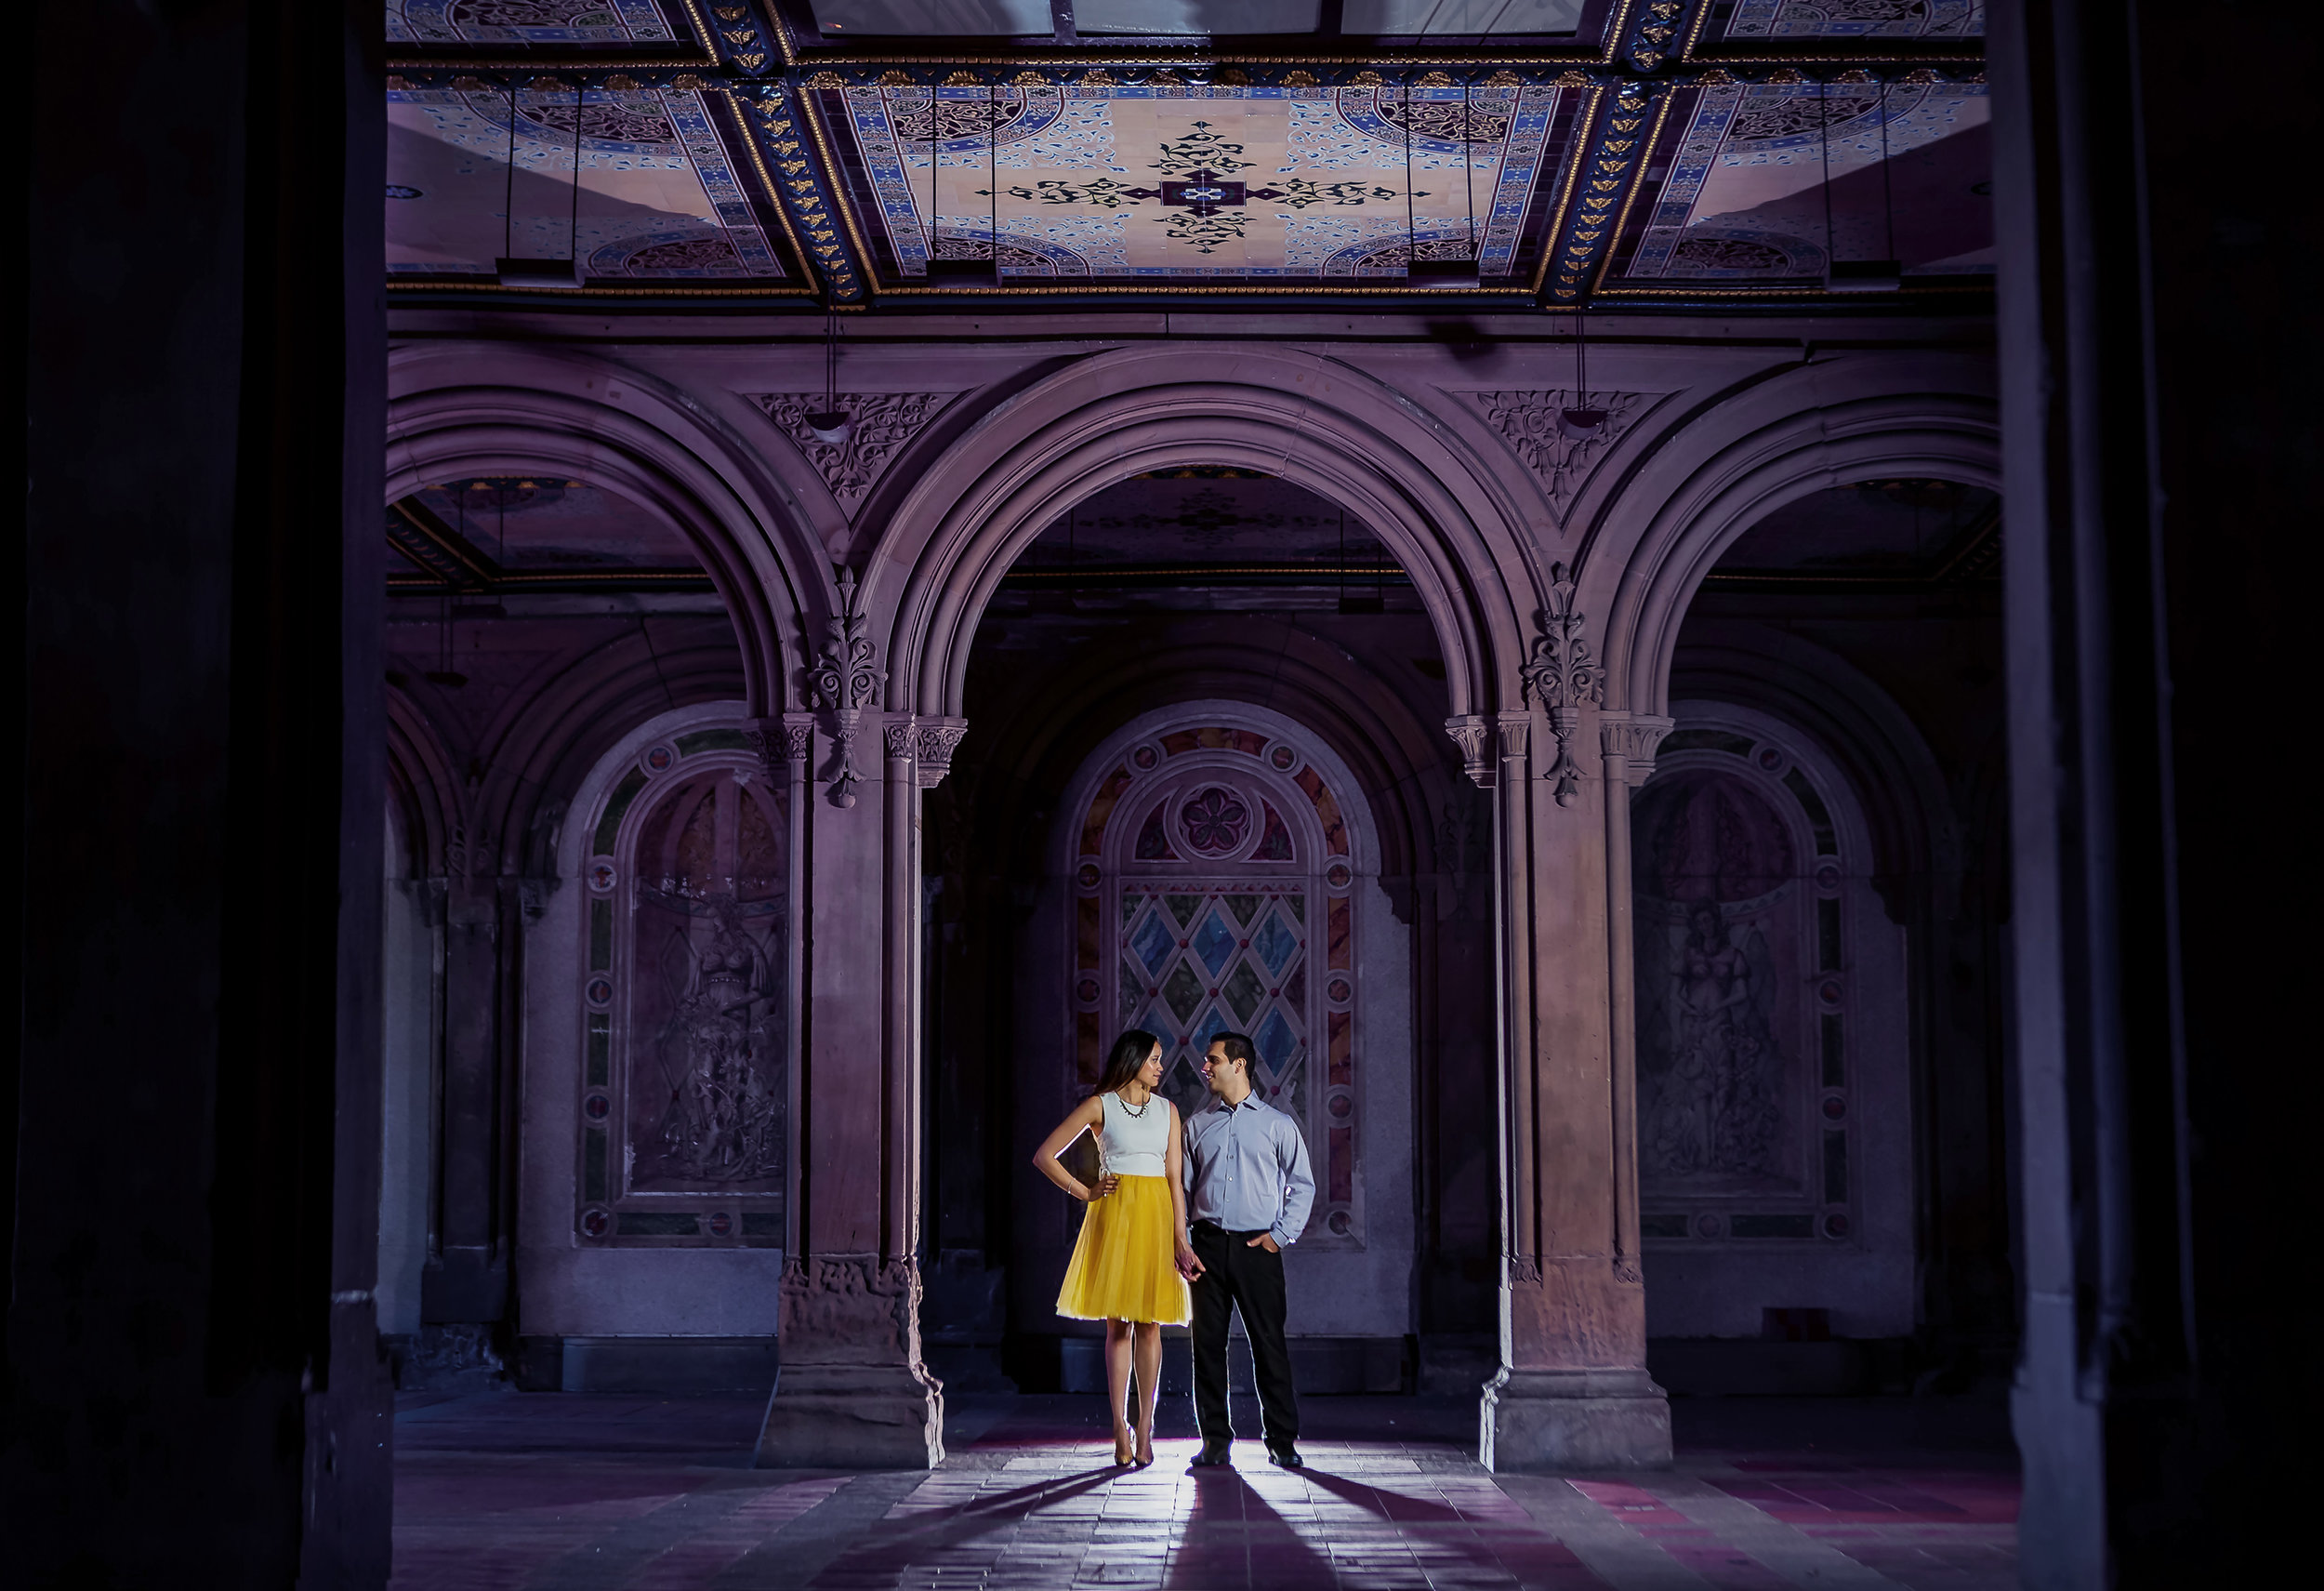 Bethesda Terrace NYC Engagement Photos at night